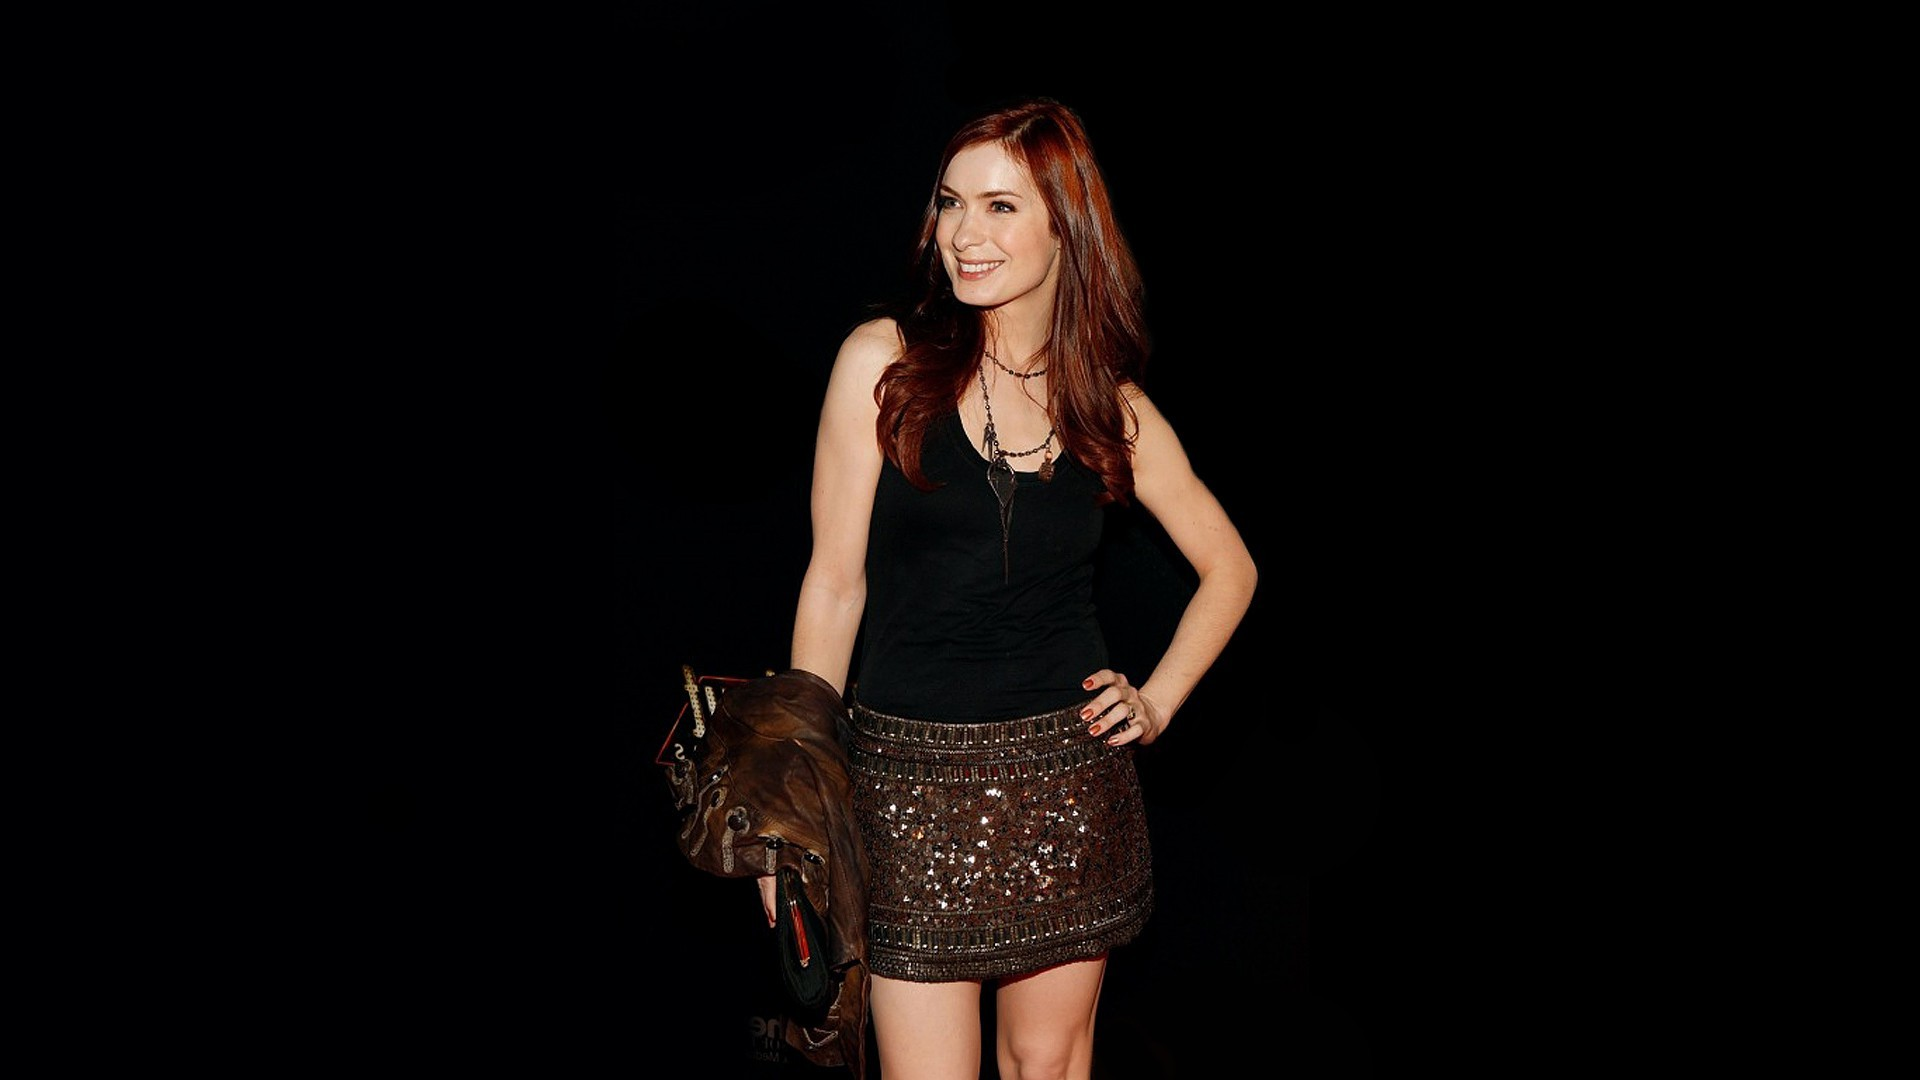 1920x1080 - Felicia Day Wallpapers 12